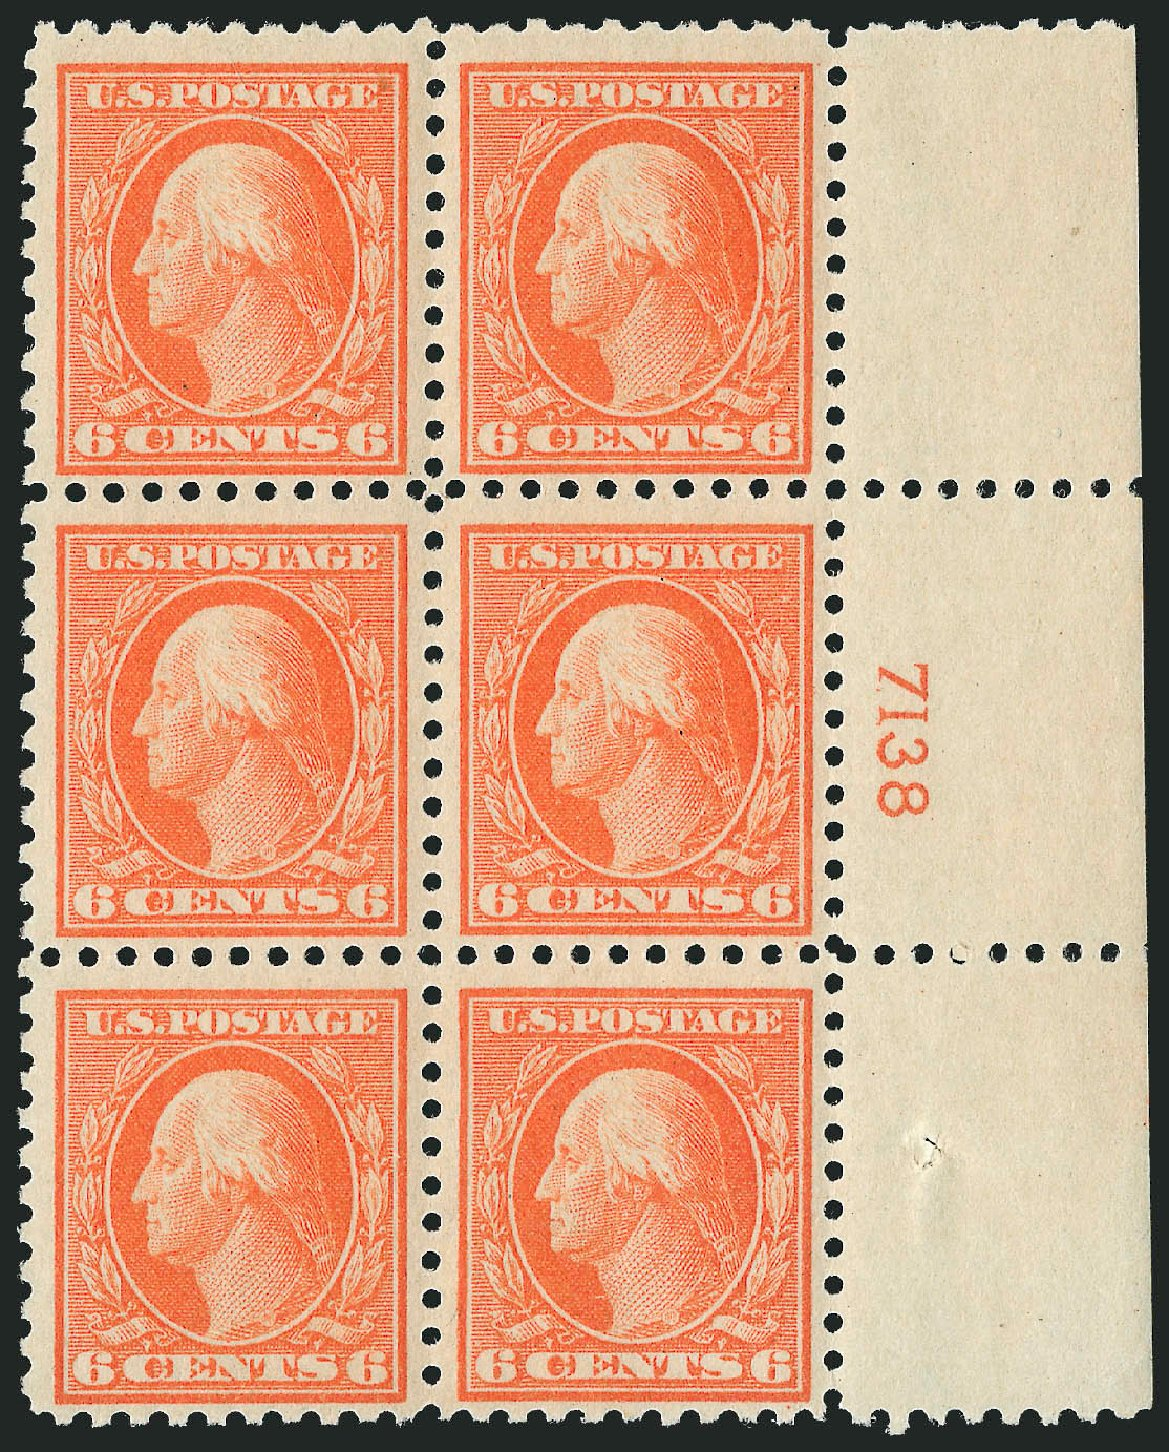 Value of US Stamp Scott Catalogue 468 - 6c 1916 Washington Perf 10. Robert Siegel Auction Galleries, Sep 2014, Sale 1078, Lot 547